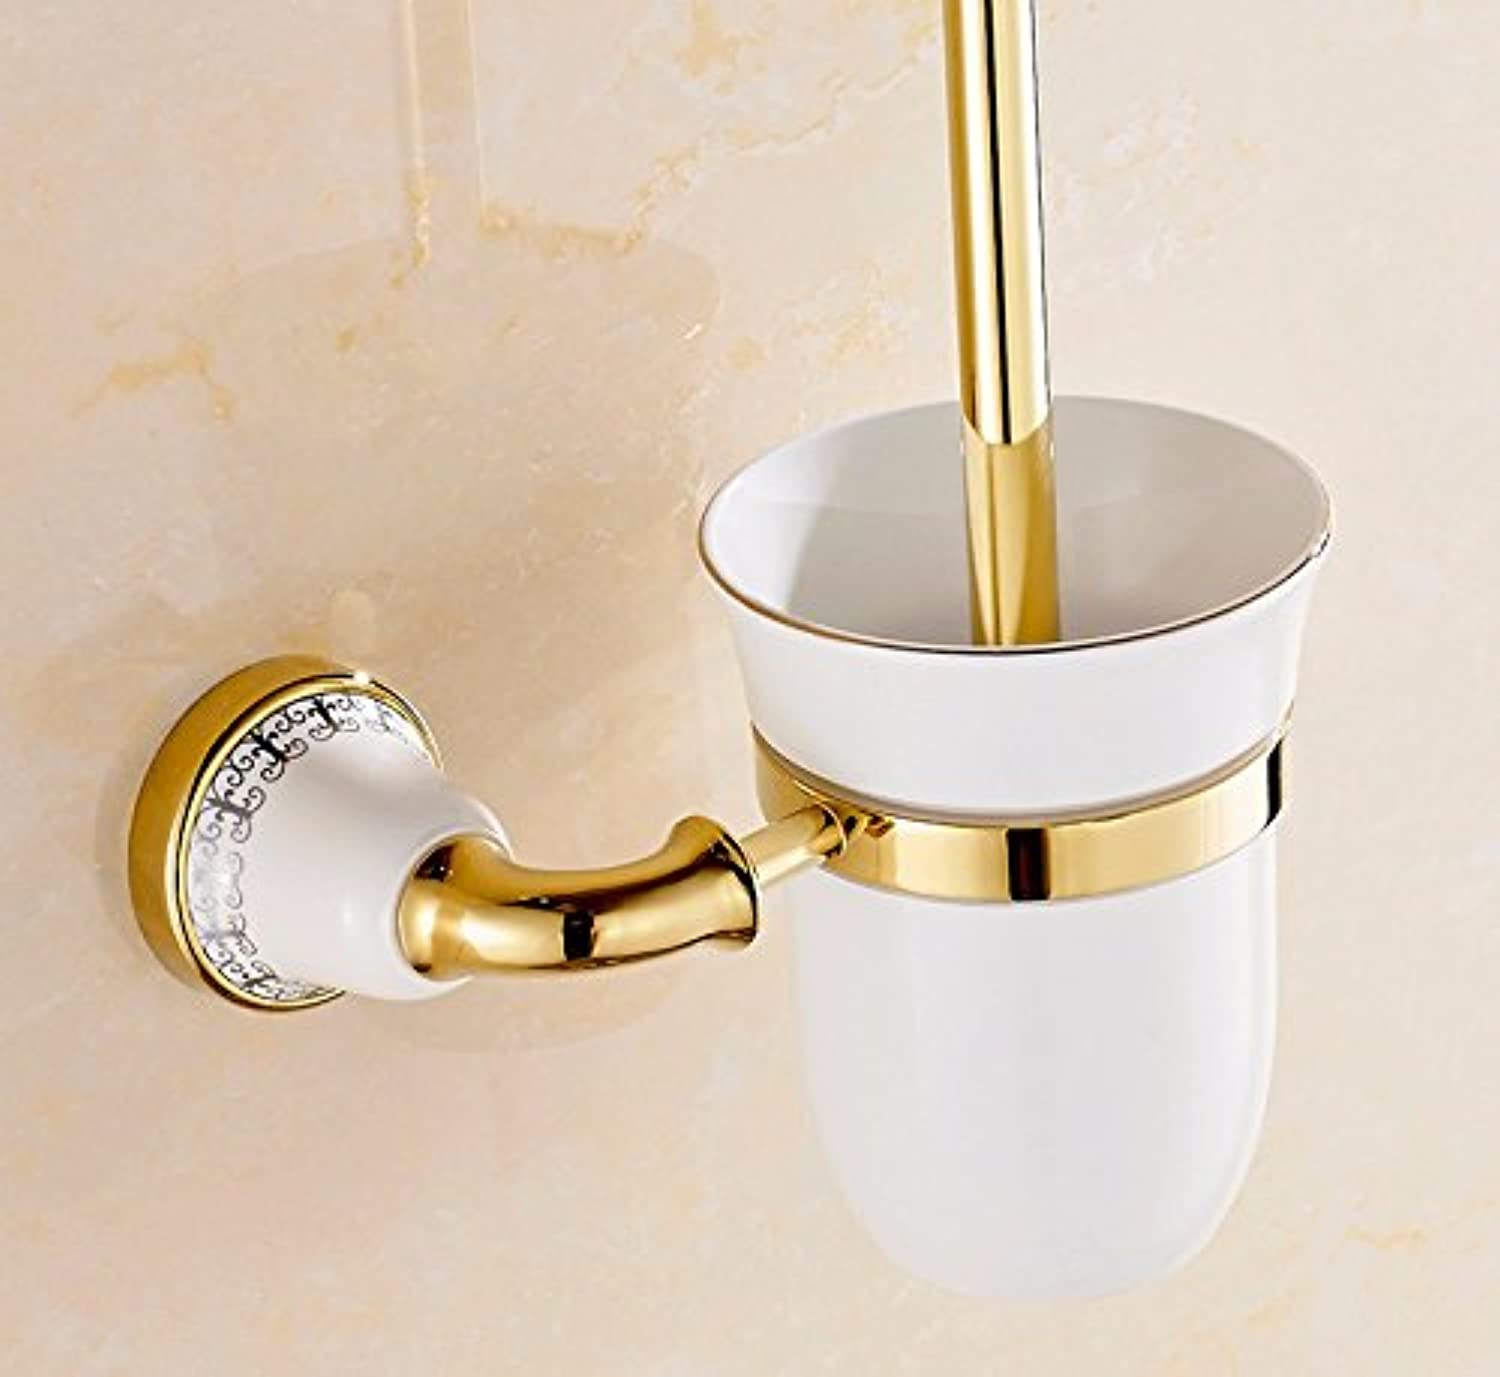 Lx.AZ.Kx Toilet Brush and Holder with long handle for Bathroom Toilet bluee-Tiled?The Bathrooms?Hardware?Continental?The gold Antique?The gold